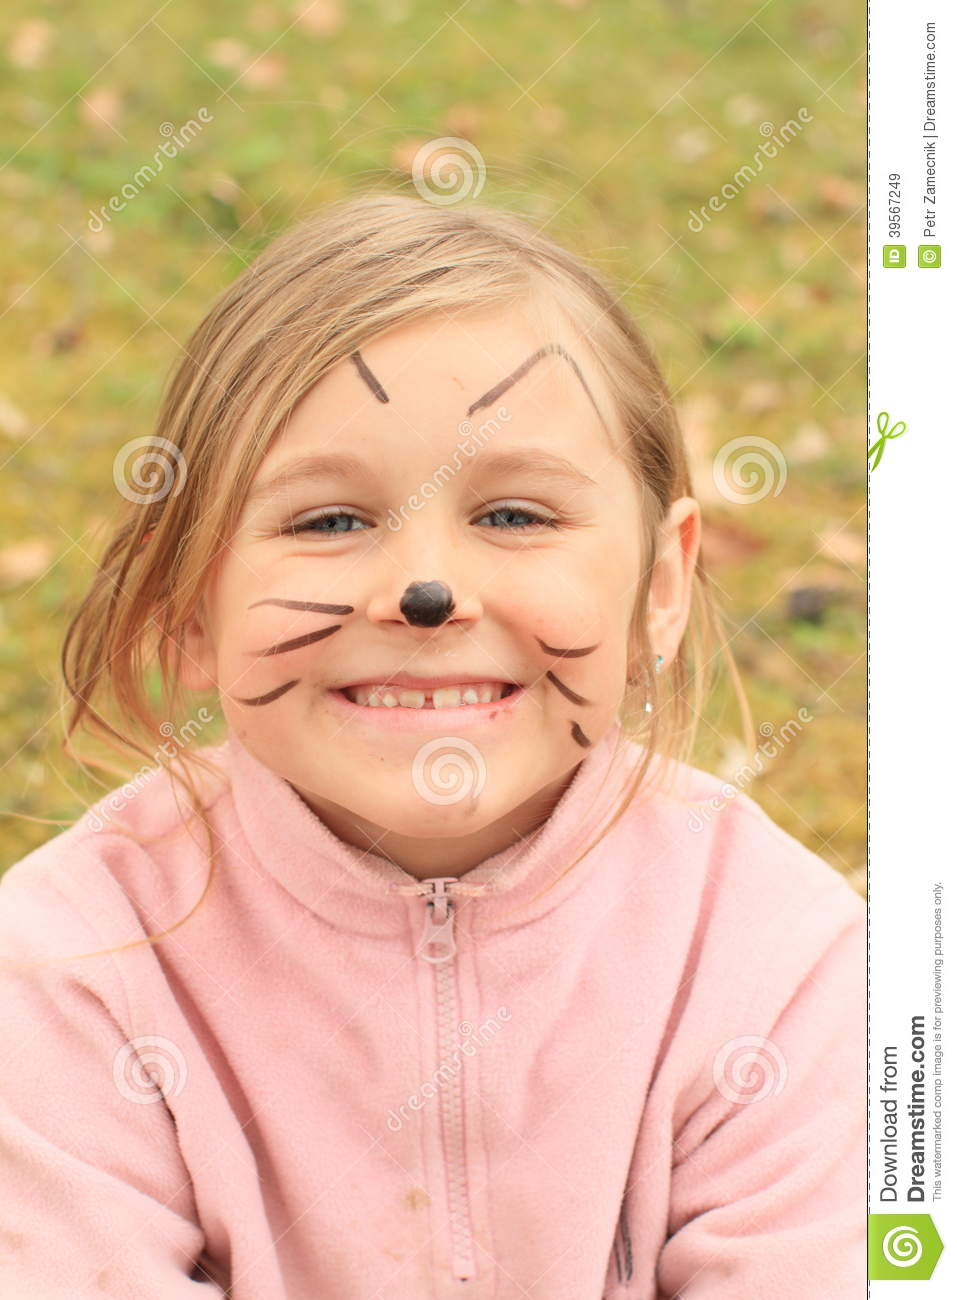 Girl Drawen As A Cat Stock Image Image Of Smiling Playful 39567249